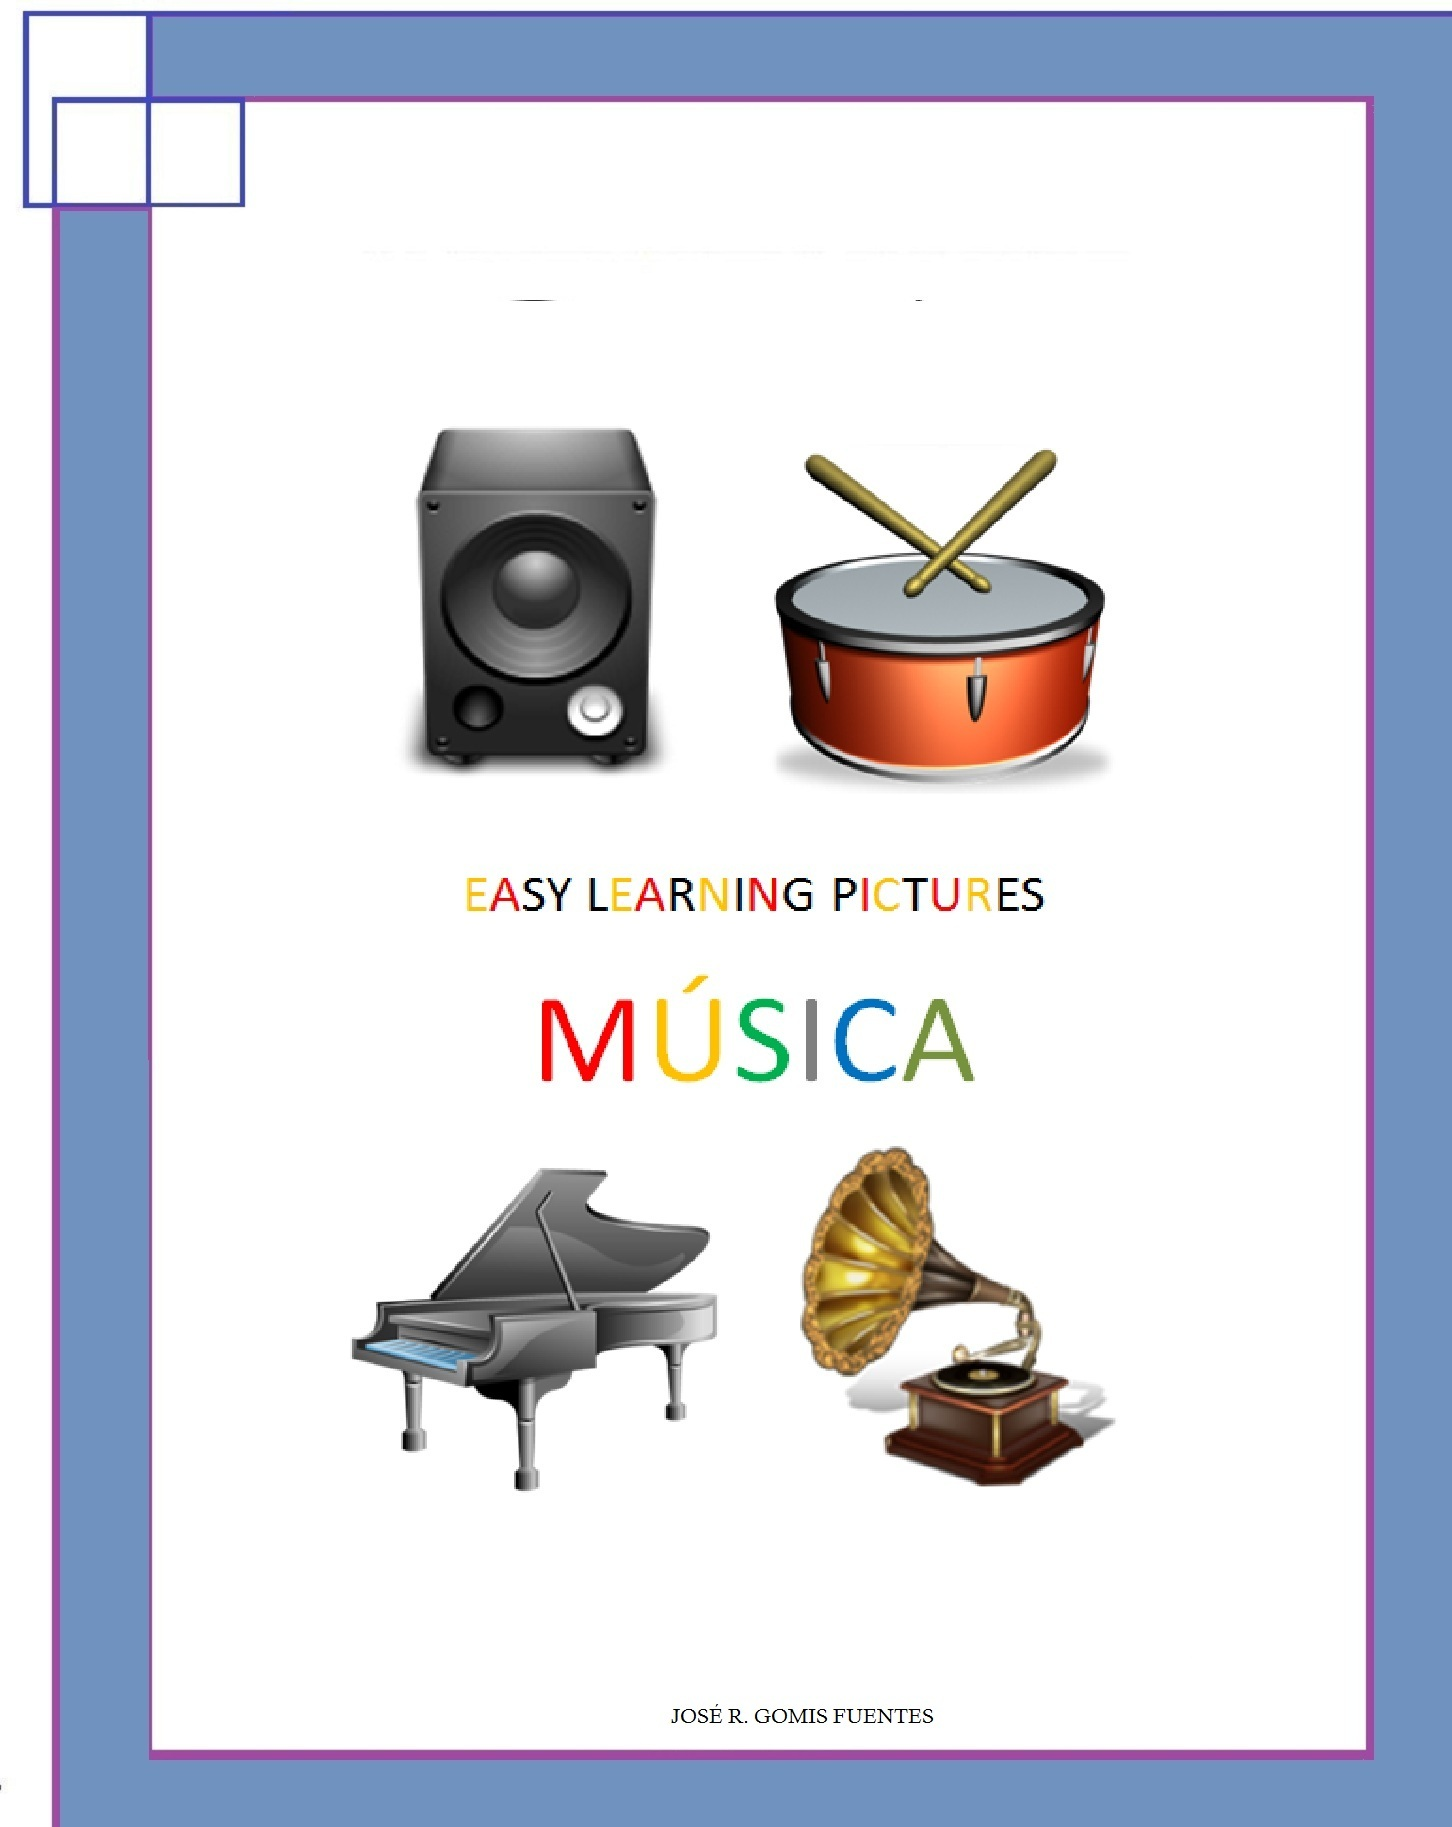 Easy Learning Pictures. Música